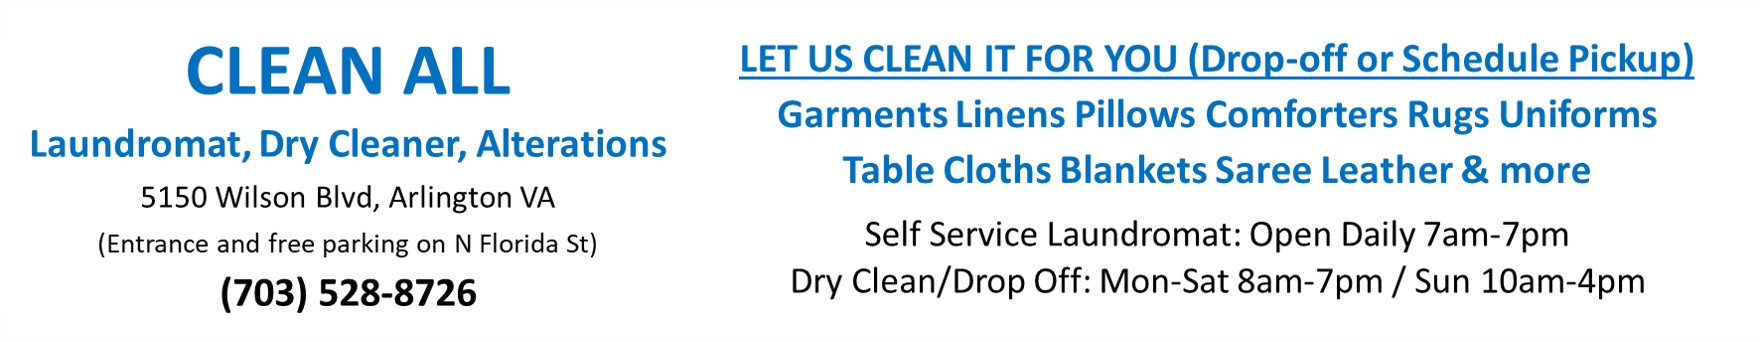 Clean All Dry Cleaners and Laundromat in Arlington VA close to Washington DC- Schedule Pickup and Delivery